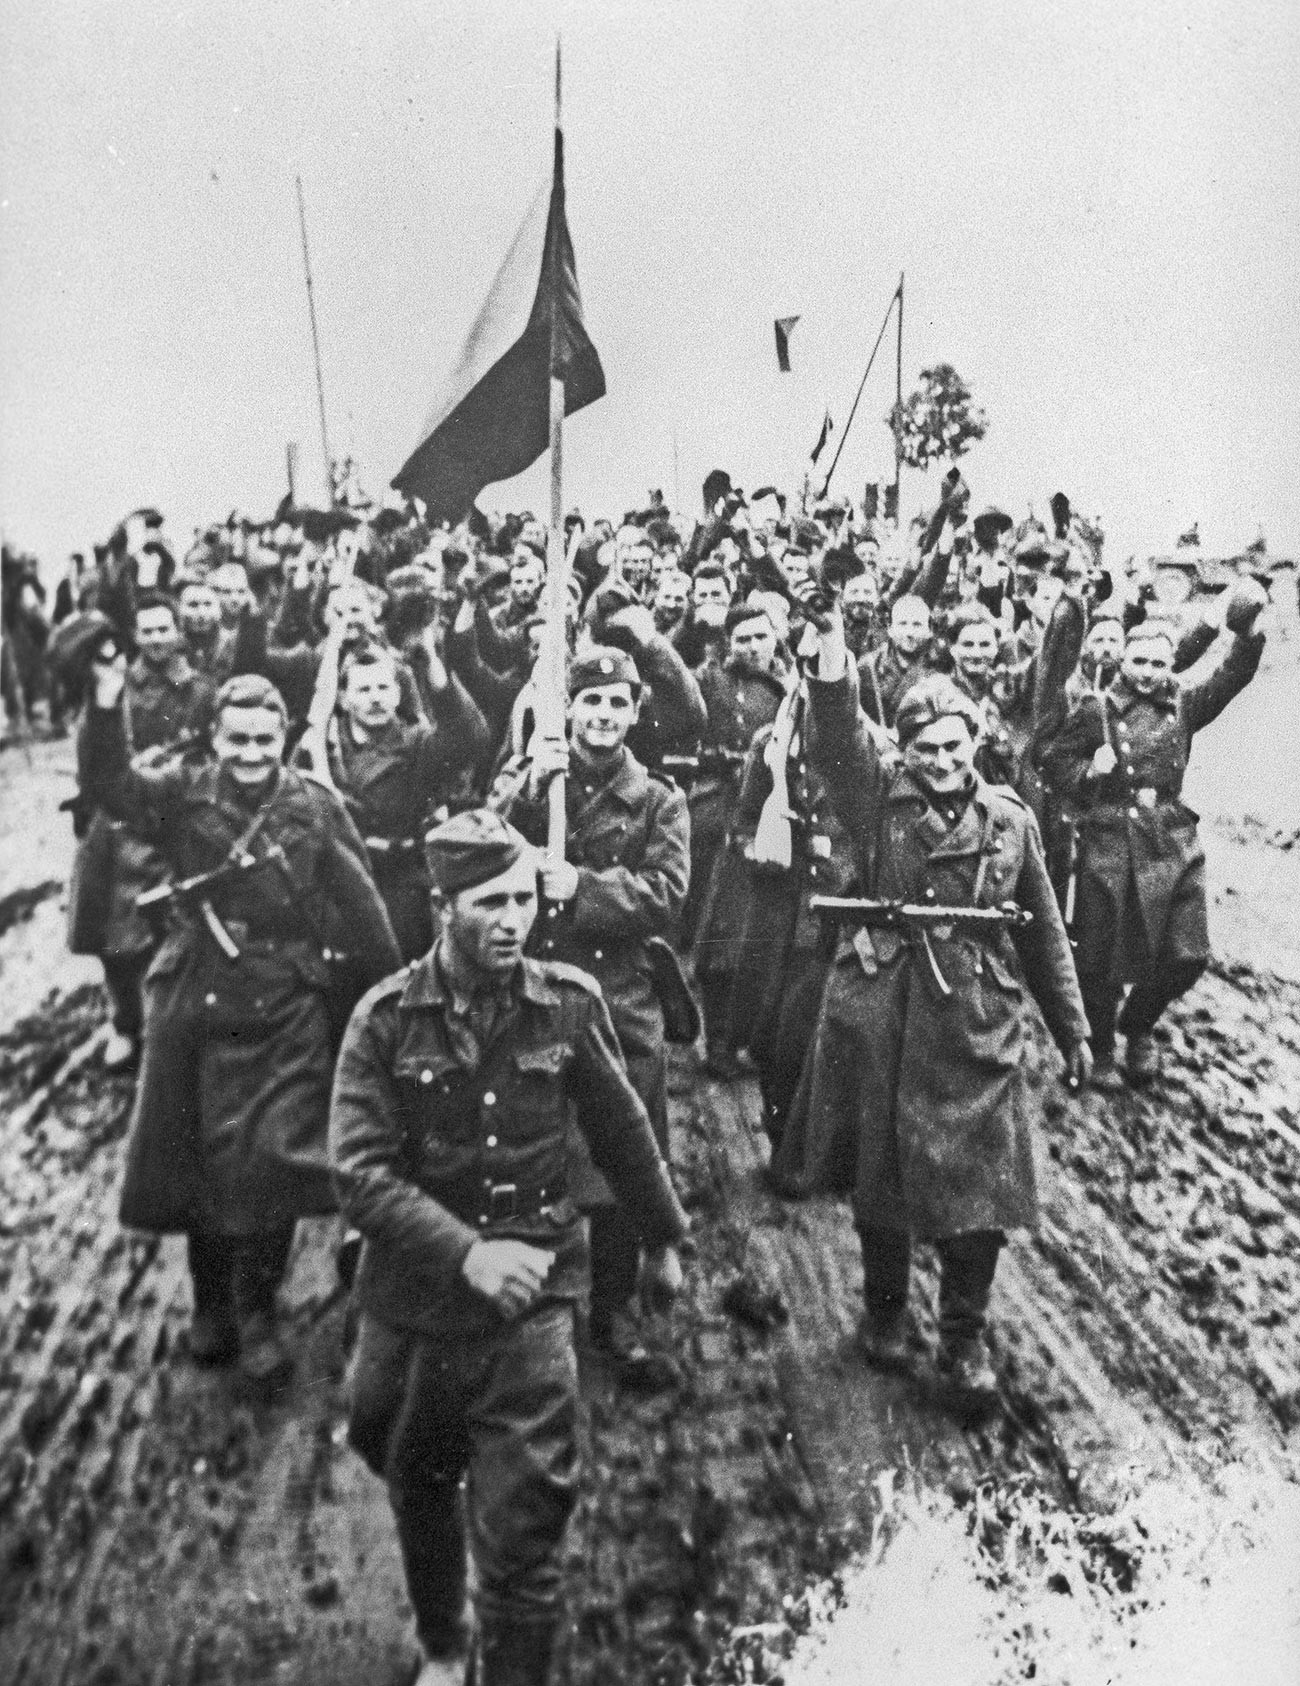 Soldiers of the 1st Czechoslovak Army Corps.